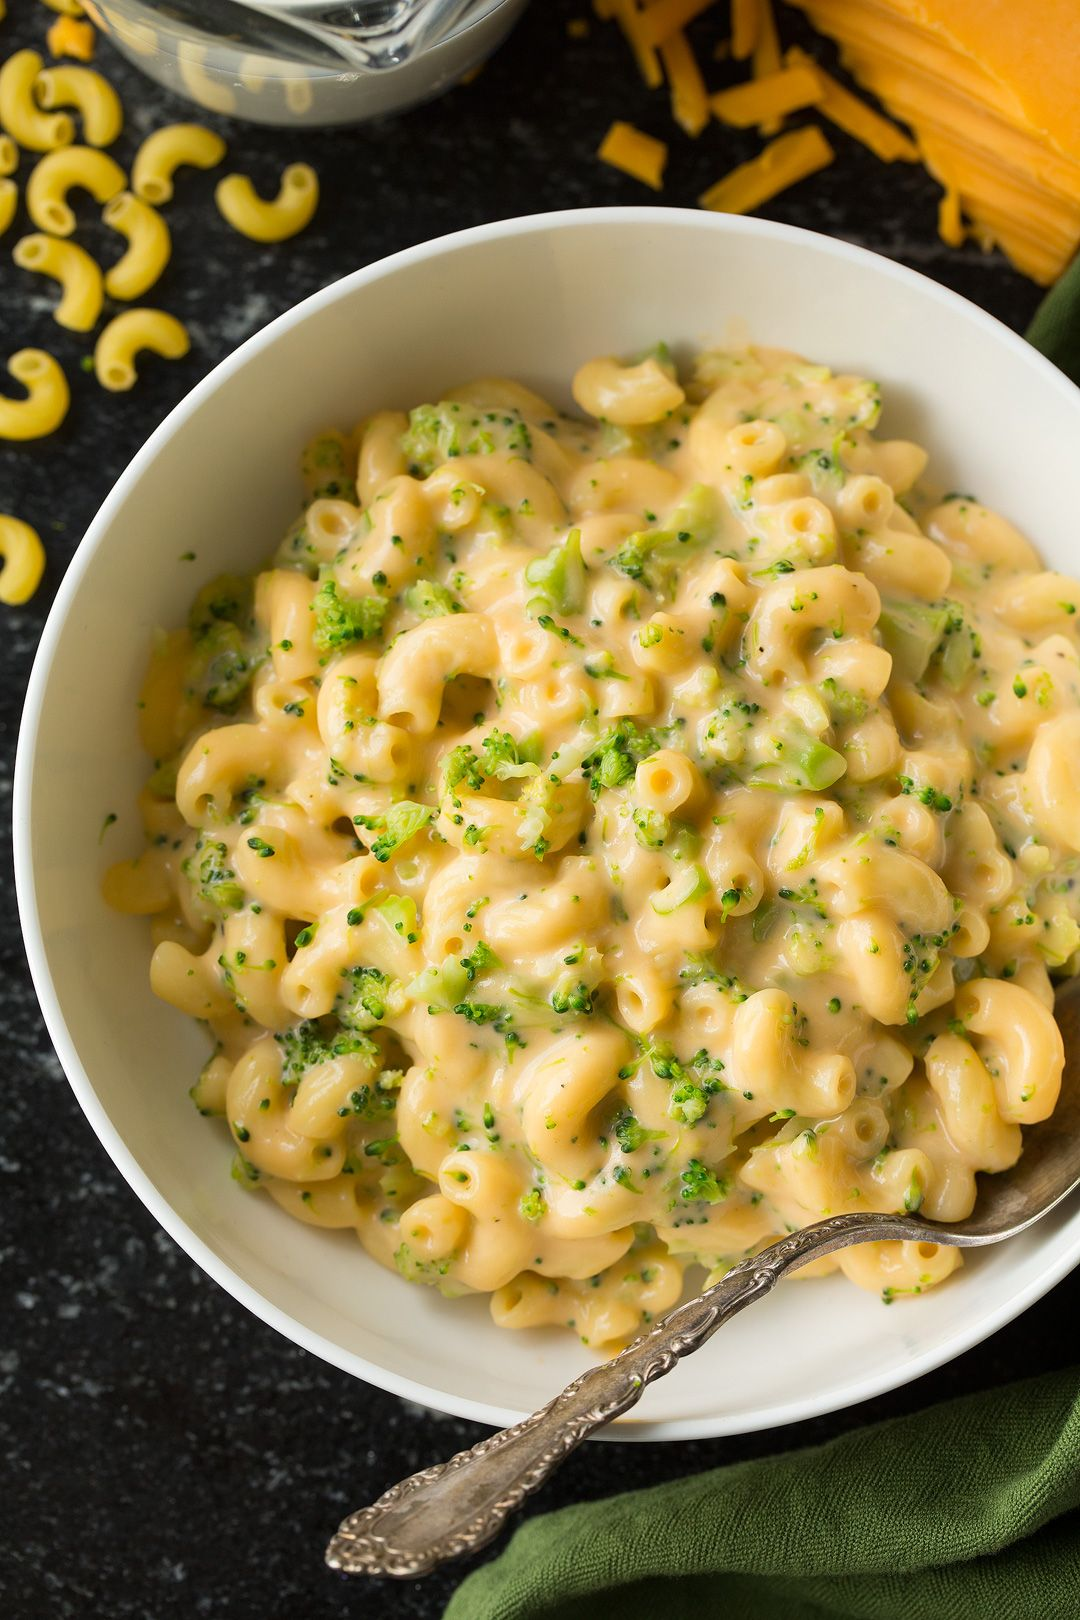 Broccoli Mac and Cheese (Easy Stovetop Recipe) - Cooking Classy